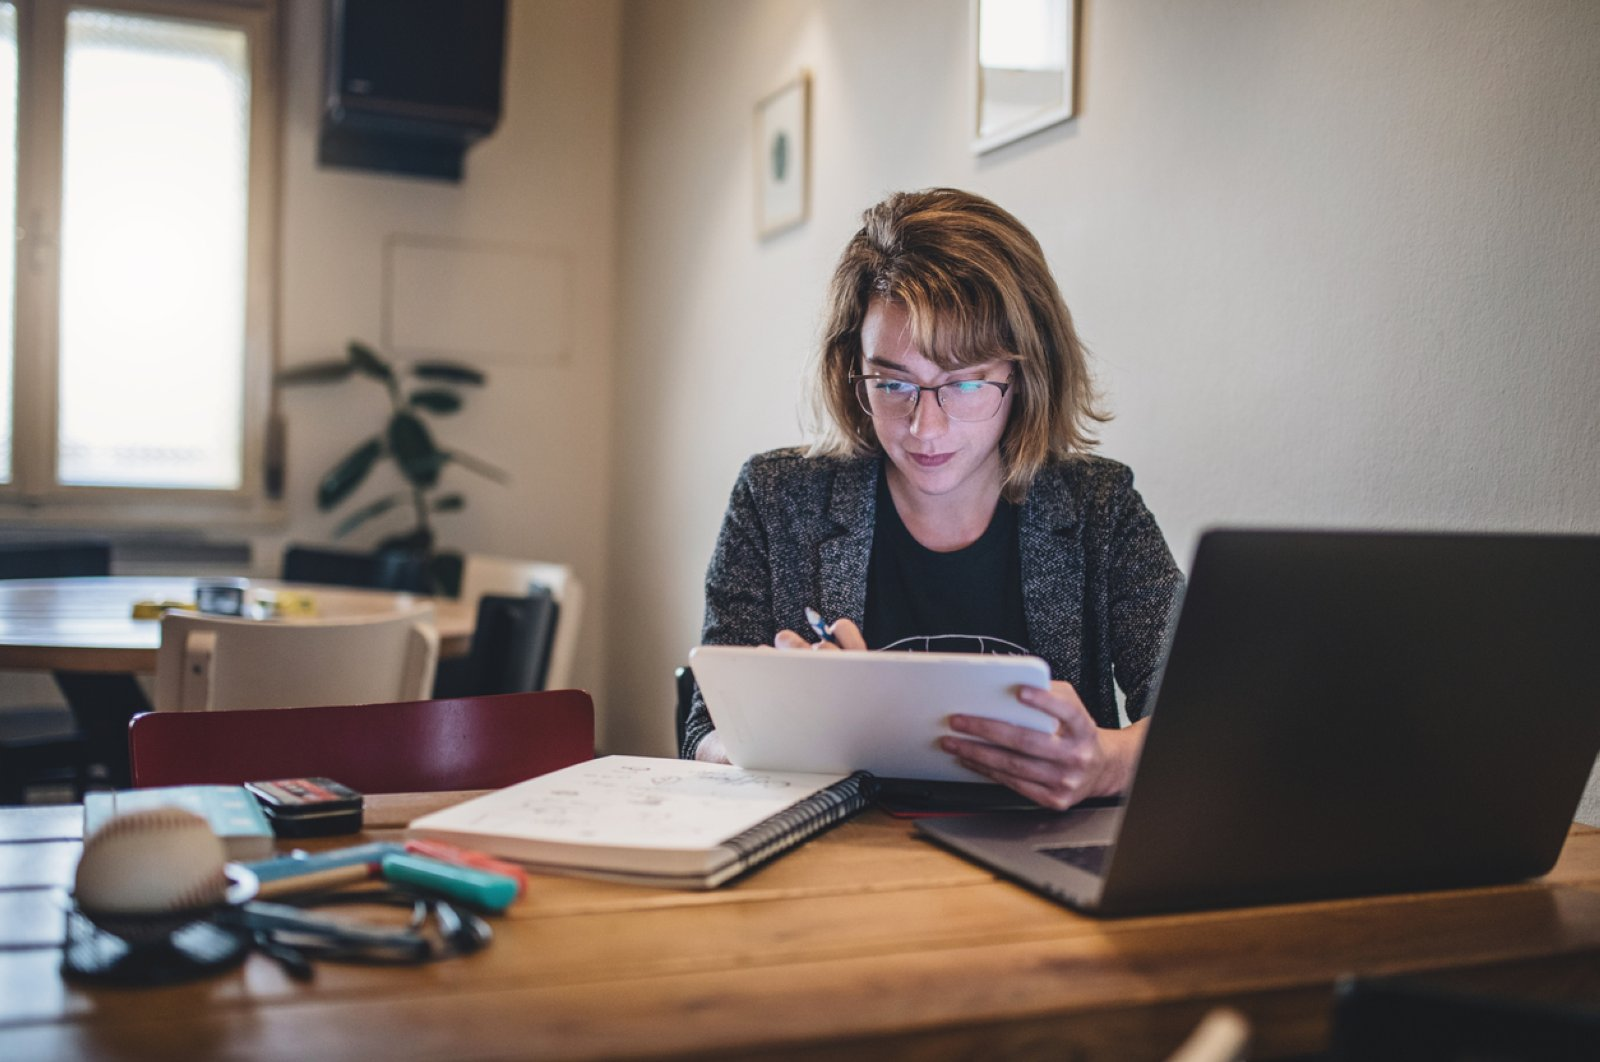 Working from home may be permanent for some companies worldwide in the post-pandemic era. (iStock Photo)